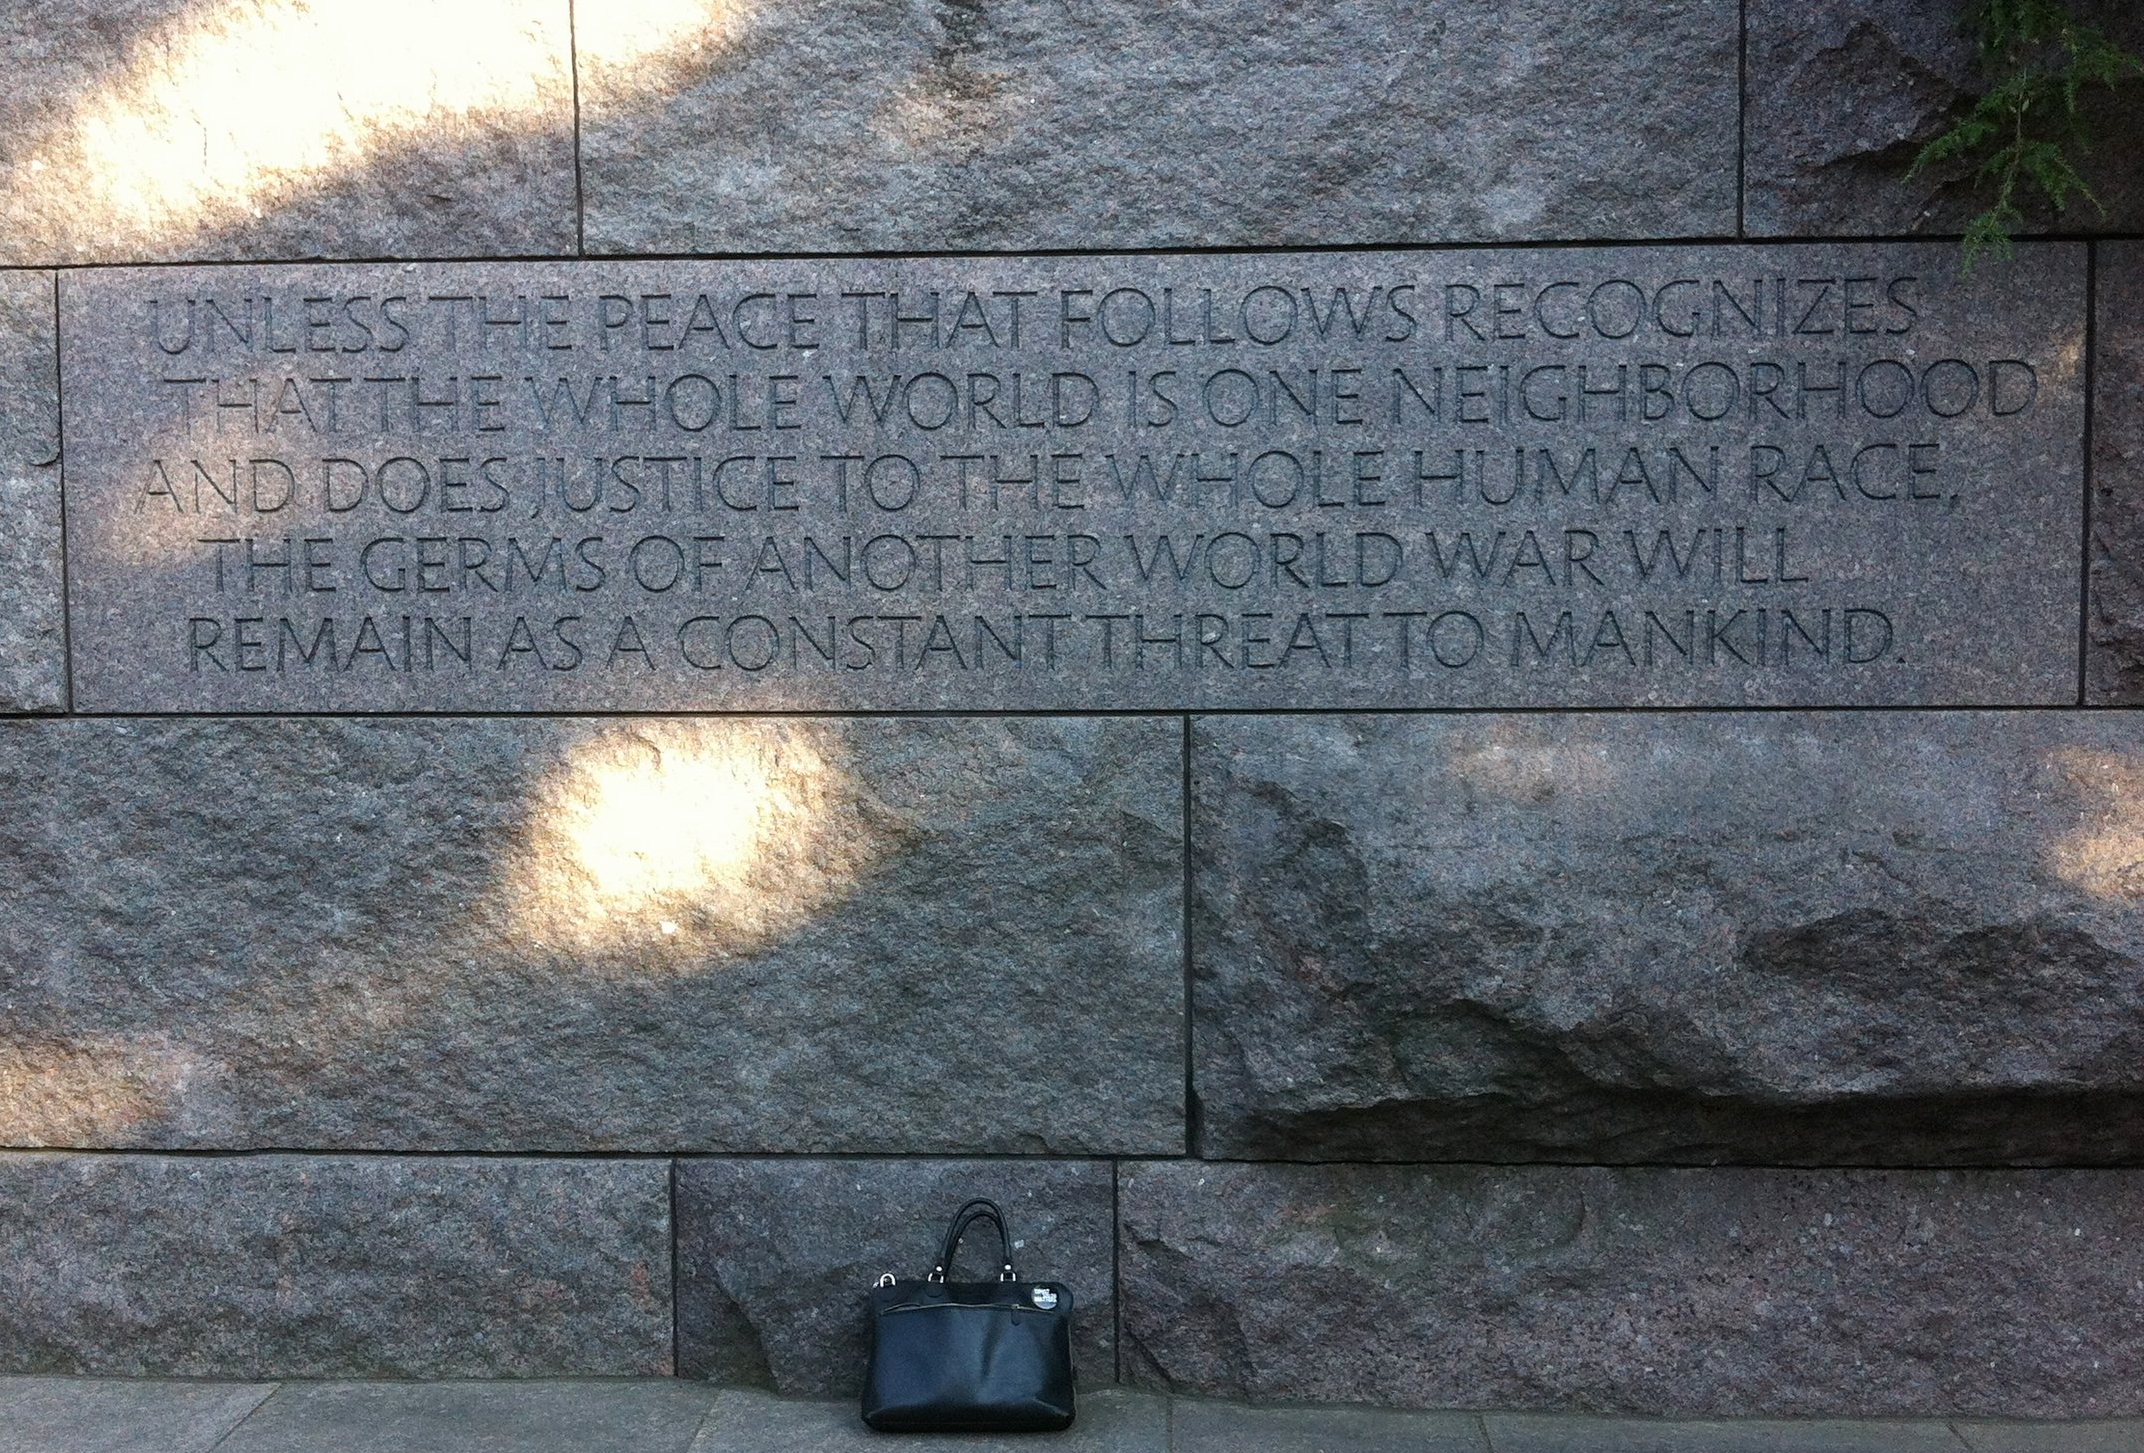 Roosevelt memorial. Washington D.C., USA, 2016.